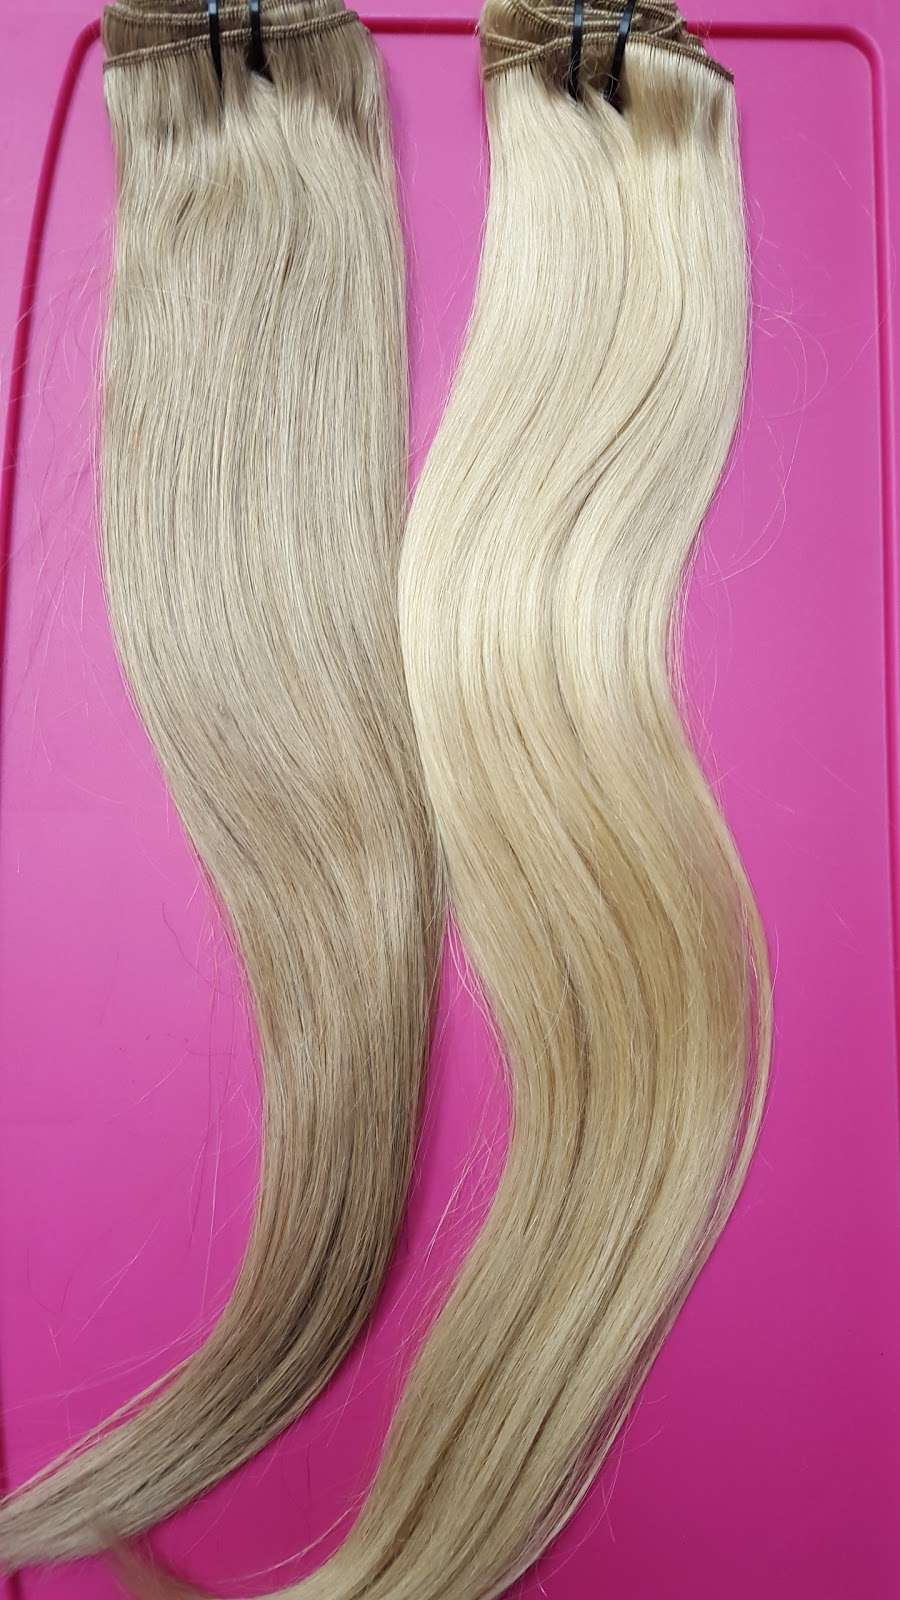 Ultimate Hair World - hair care    Photo 6 of 10   Address: 16 Molter Pl, Bloomfield, NJ 07003, USA   Phone: (973) 622-6900